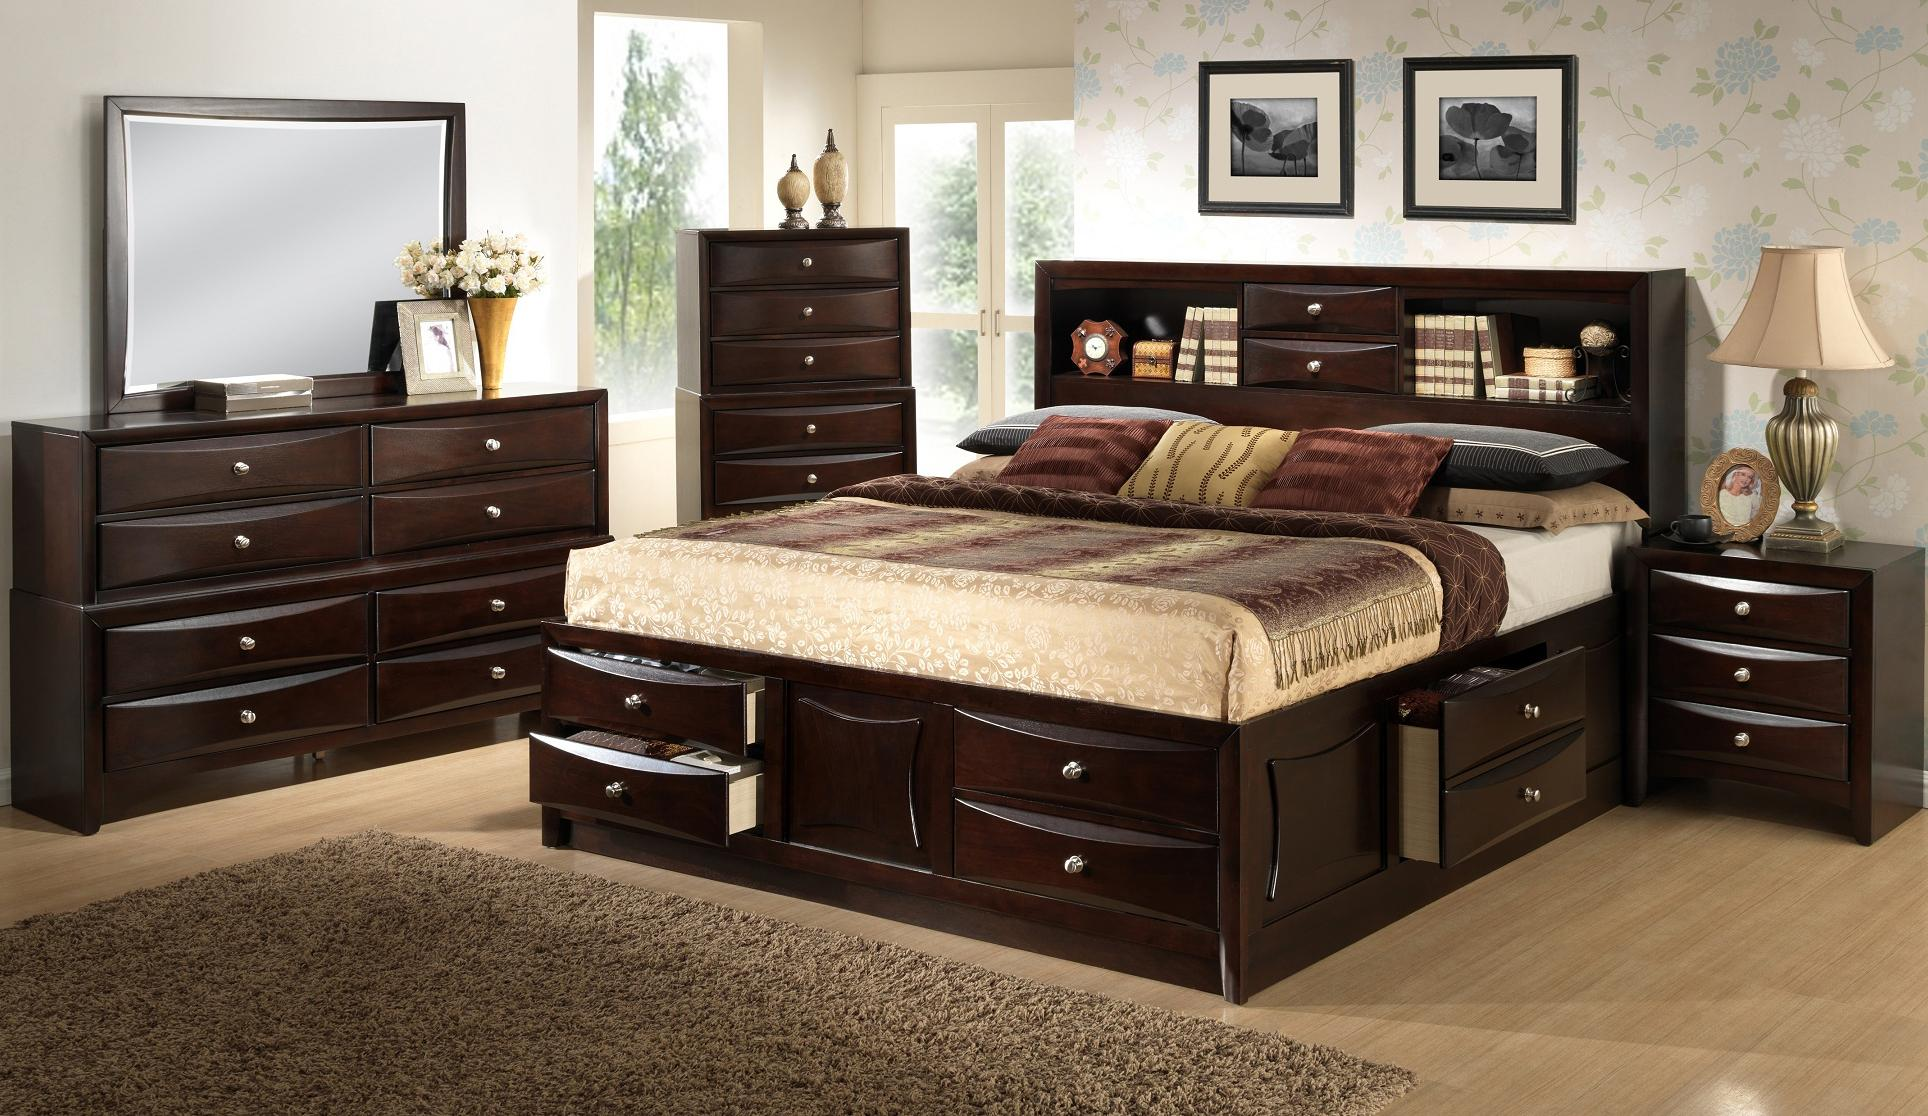 Lifestyle c0172 king california king storage bed w bookcase headboard beck 39 s furniture for Bedroom set with storage drawers